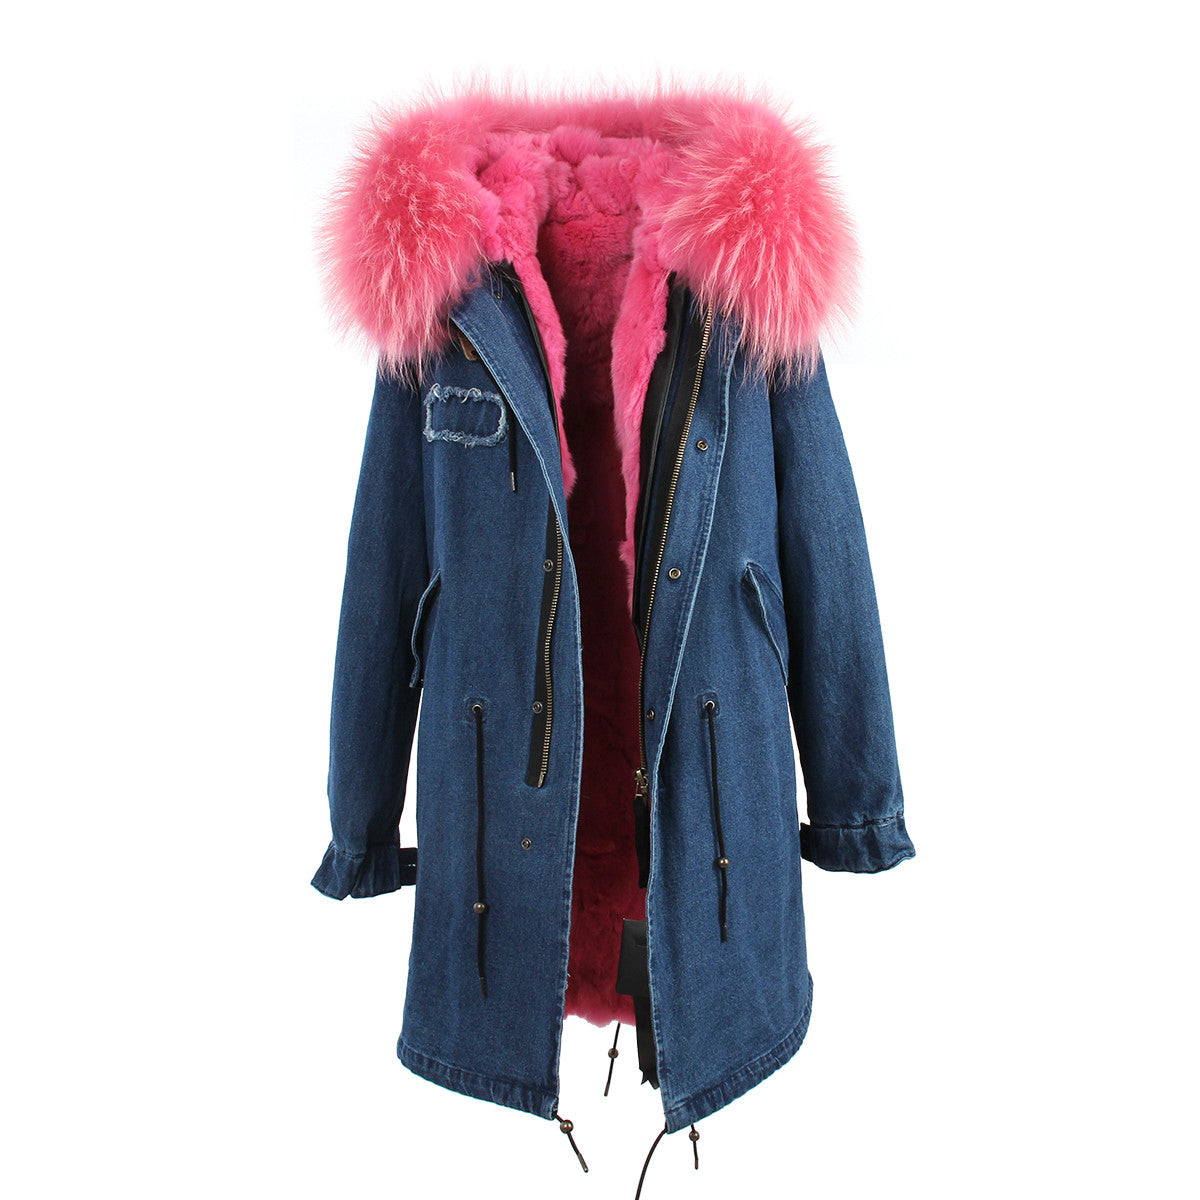 Fashion Women Raccoon Rabbit Fur Coat - All In One Place With Us - 9